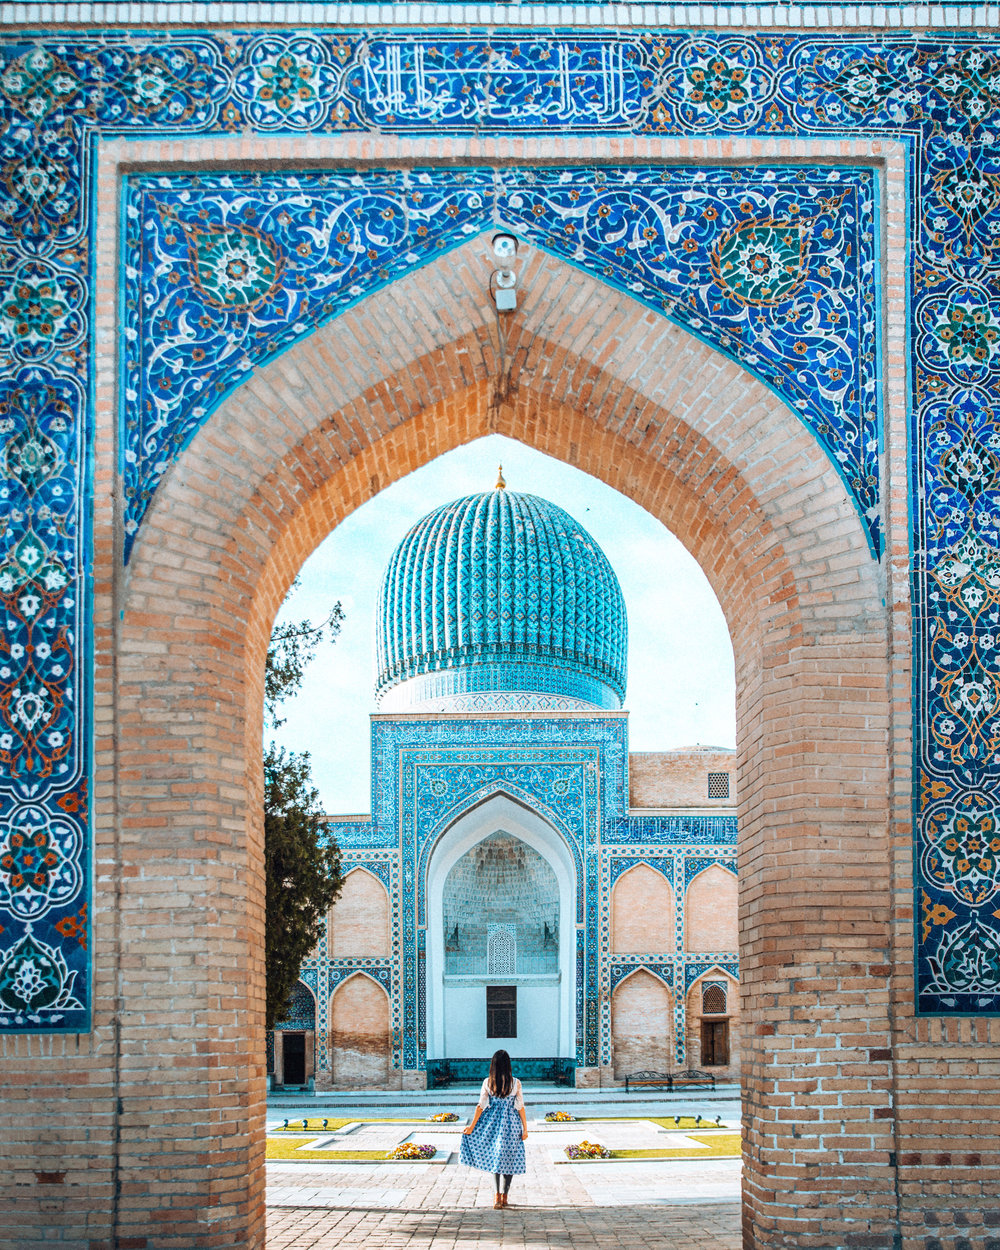 Top Places to Visit in Uzbekistan, Samarkand